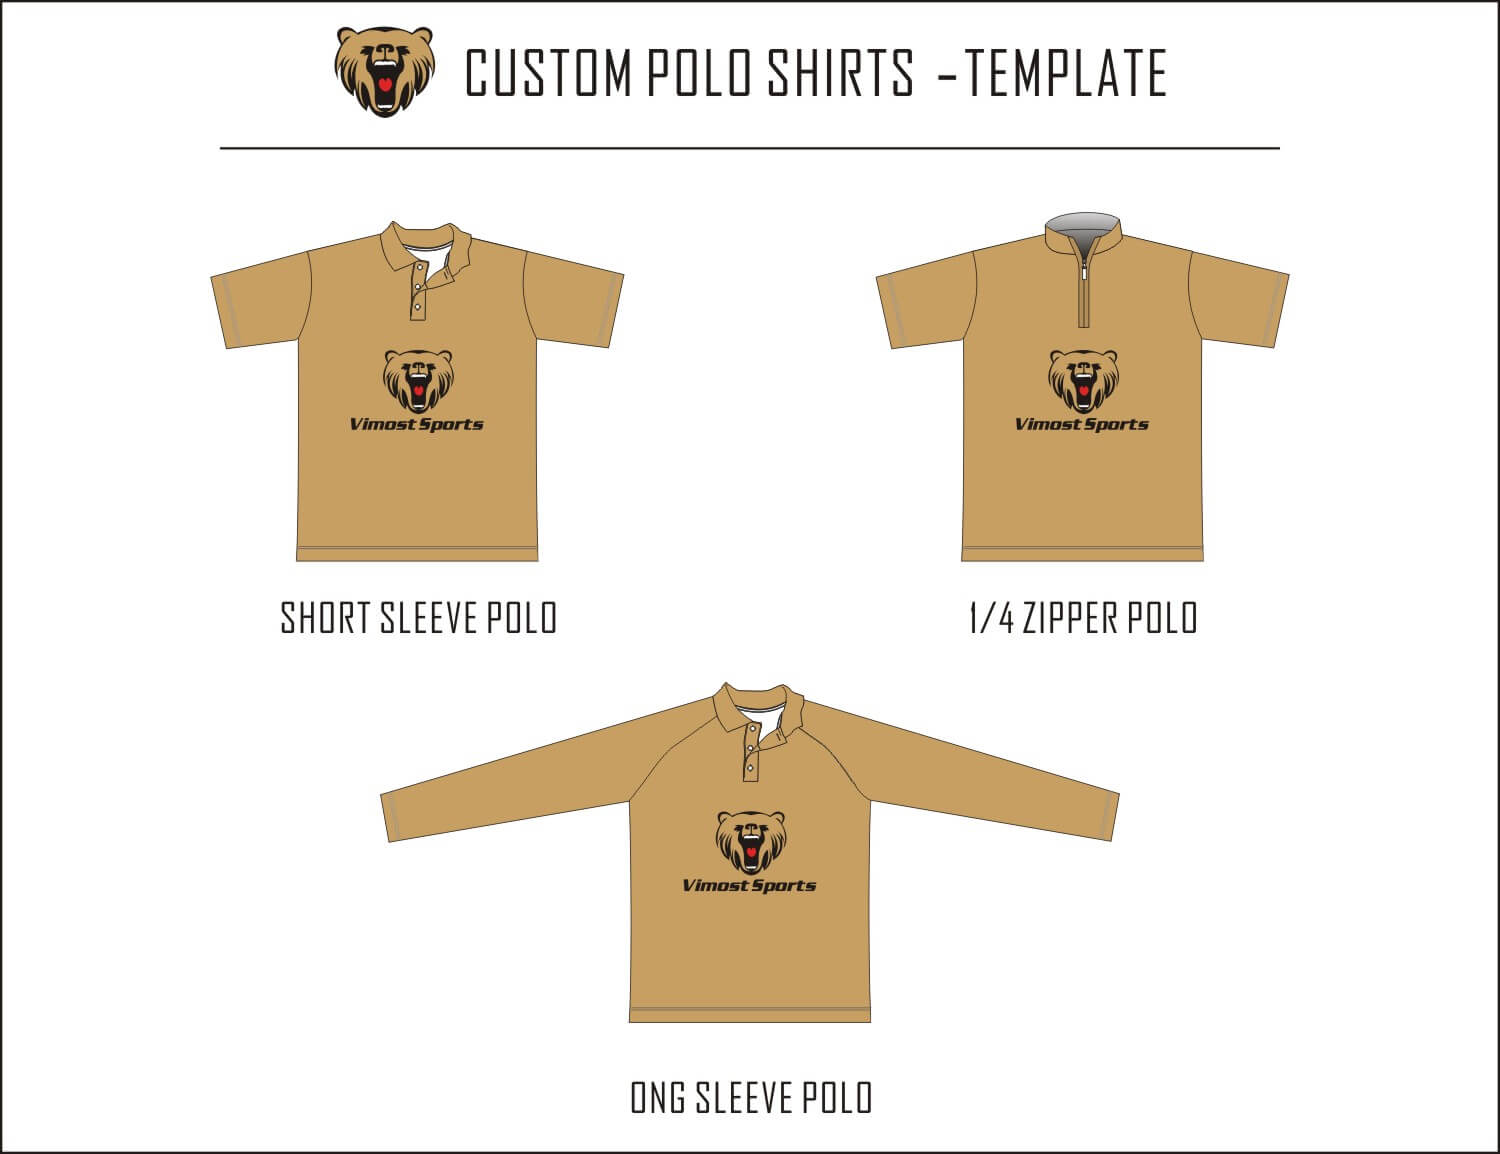 polo shirts-Template